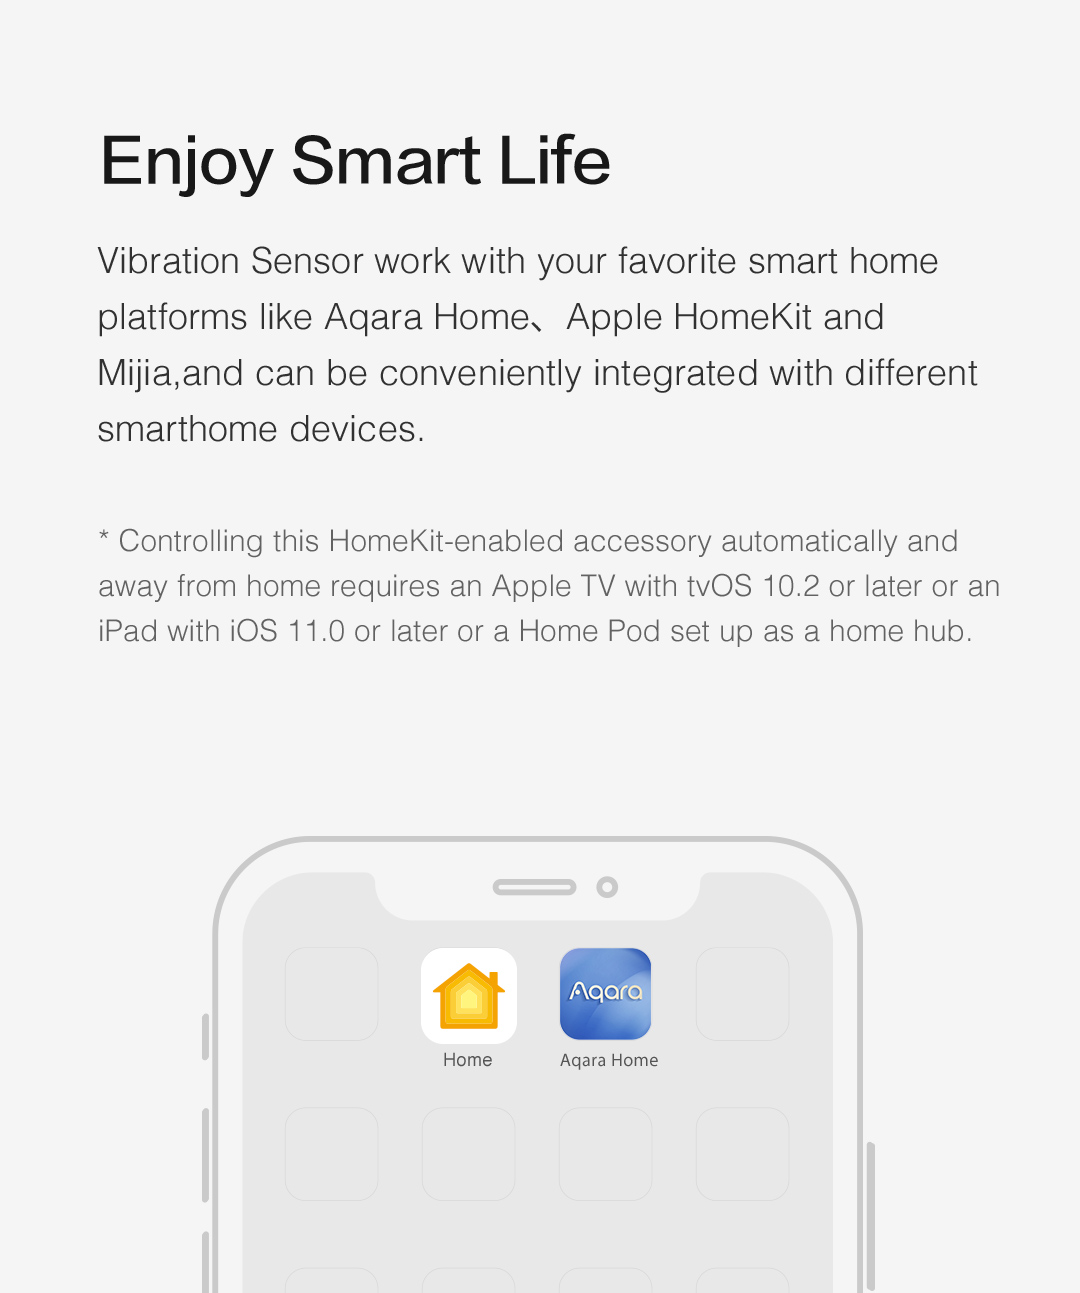 Our wireless vibration sensor works with Apple HomeKit and Xiaomi Mijia